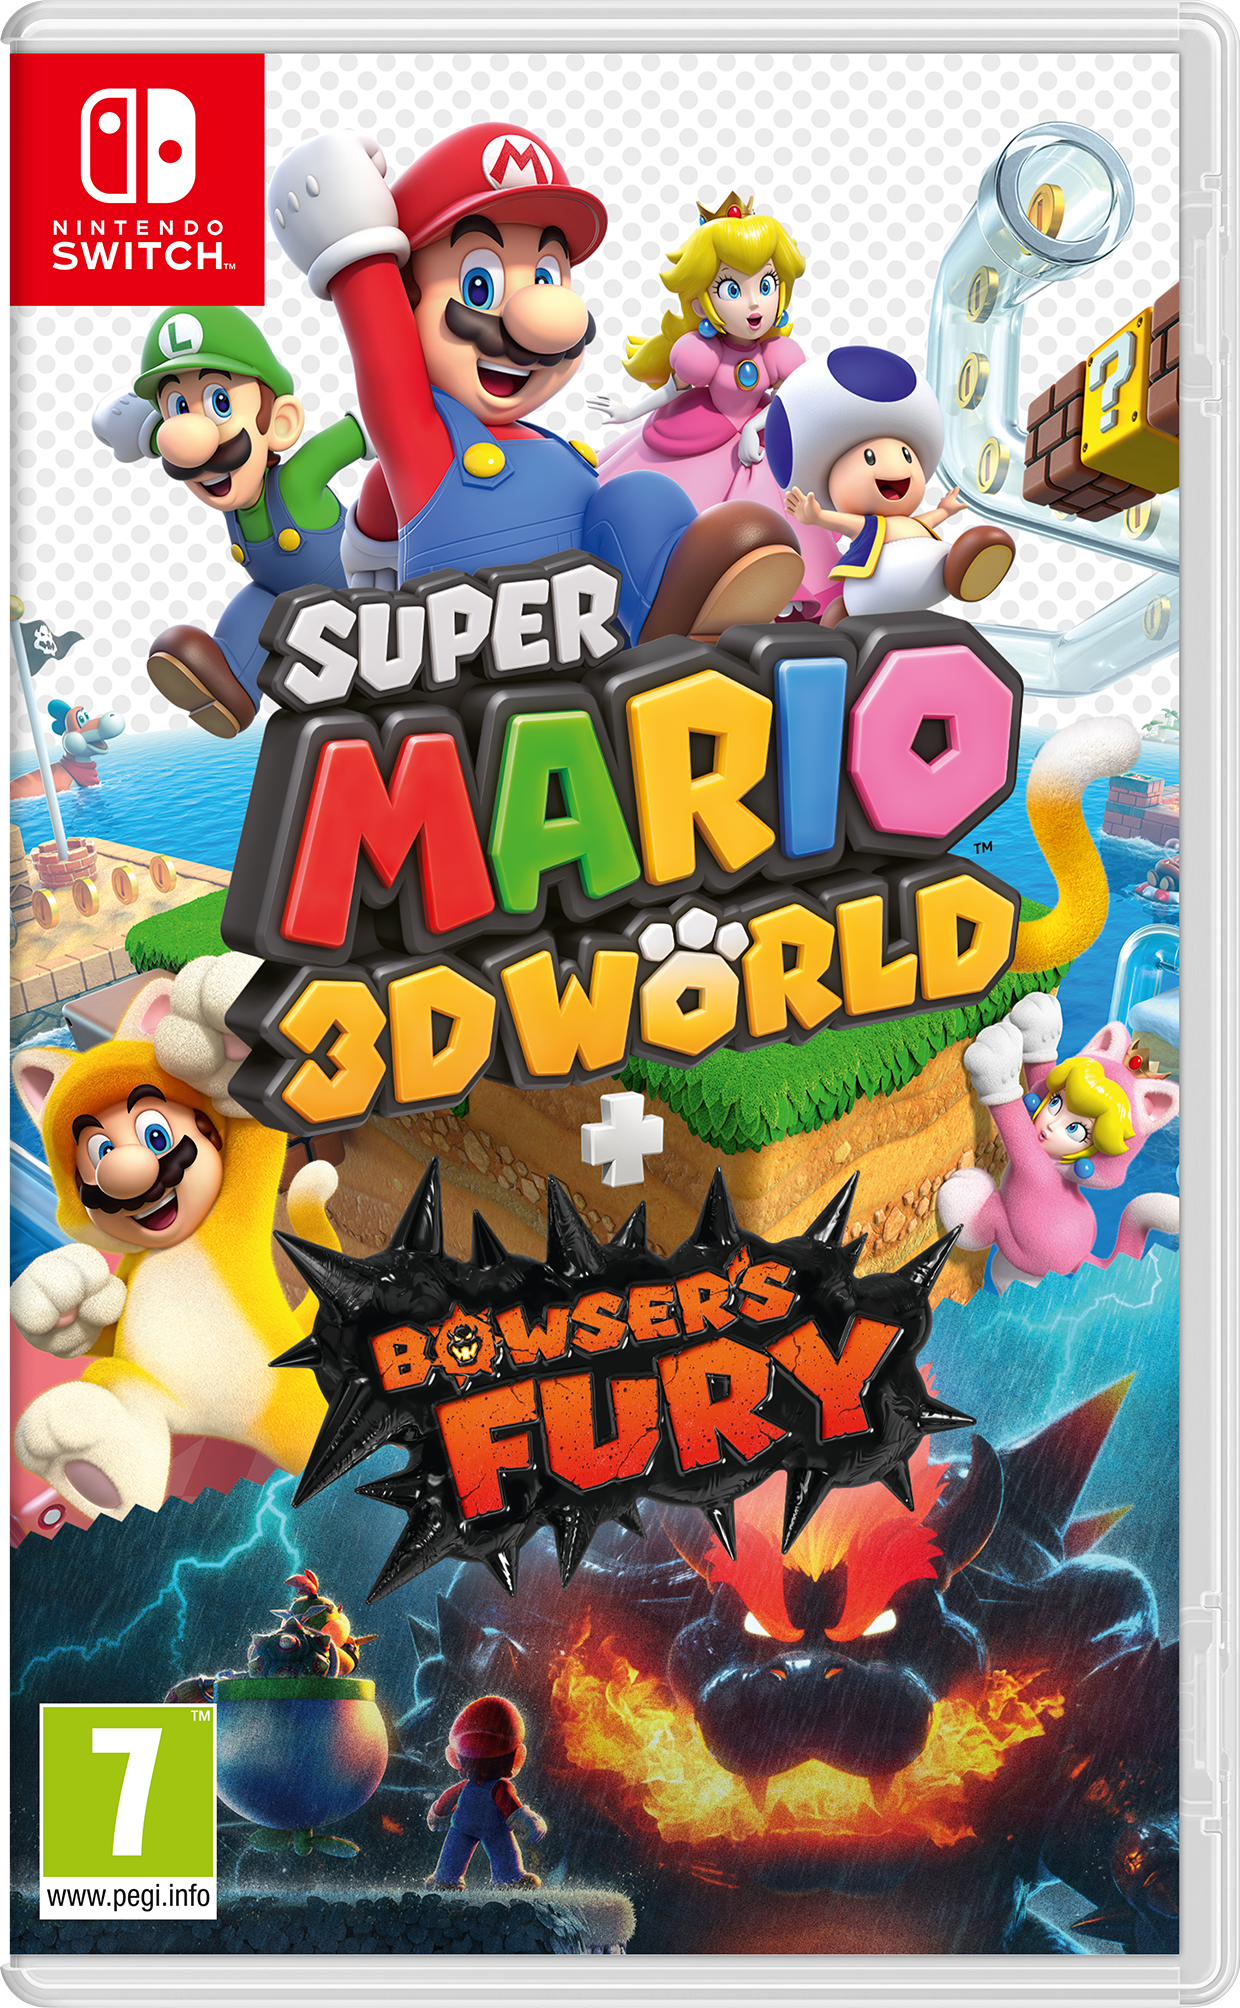 Super Mario 3D World and Bowser's Fury (NS)